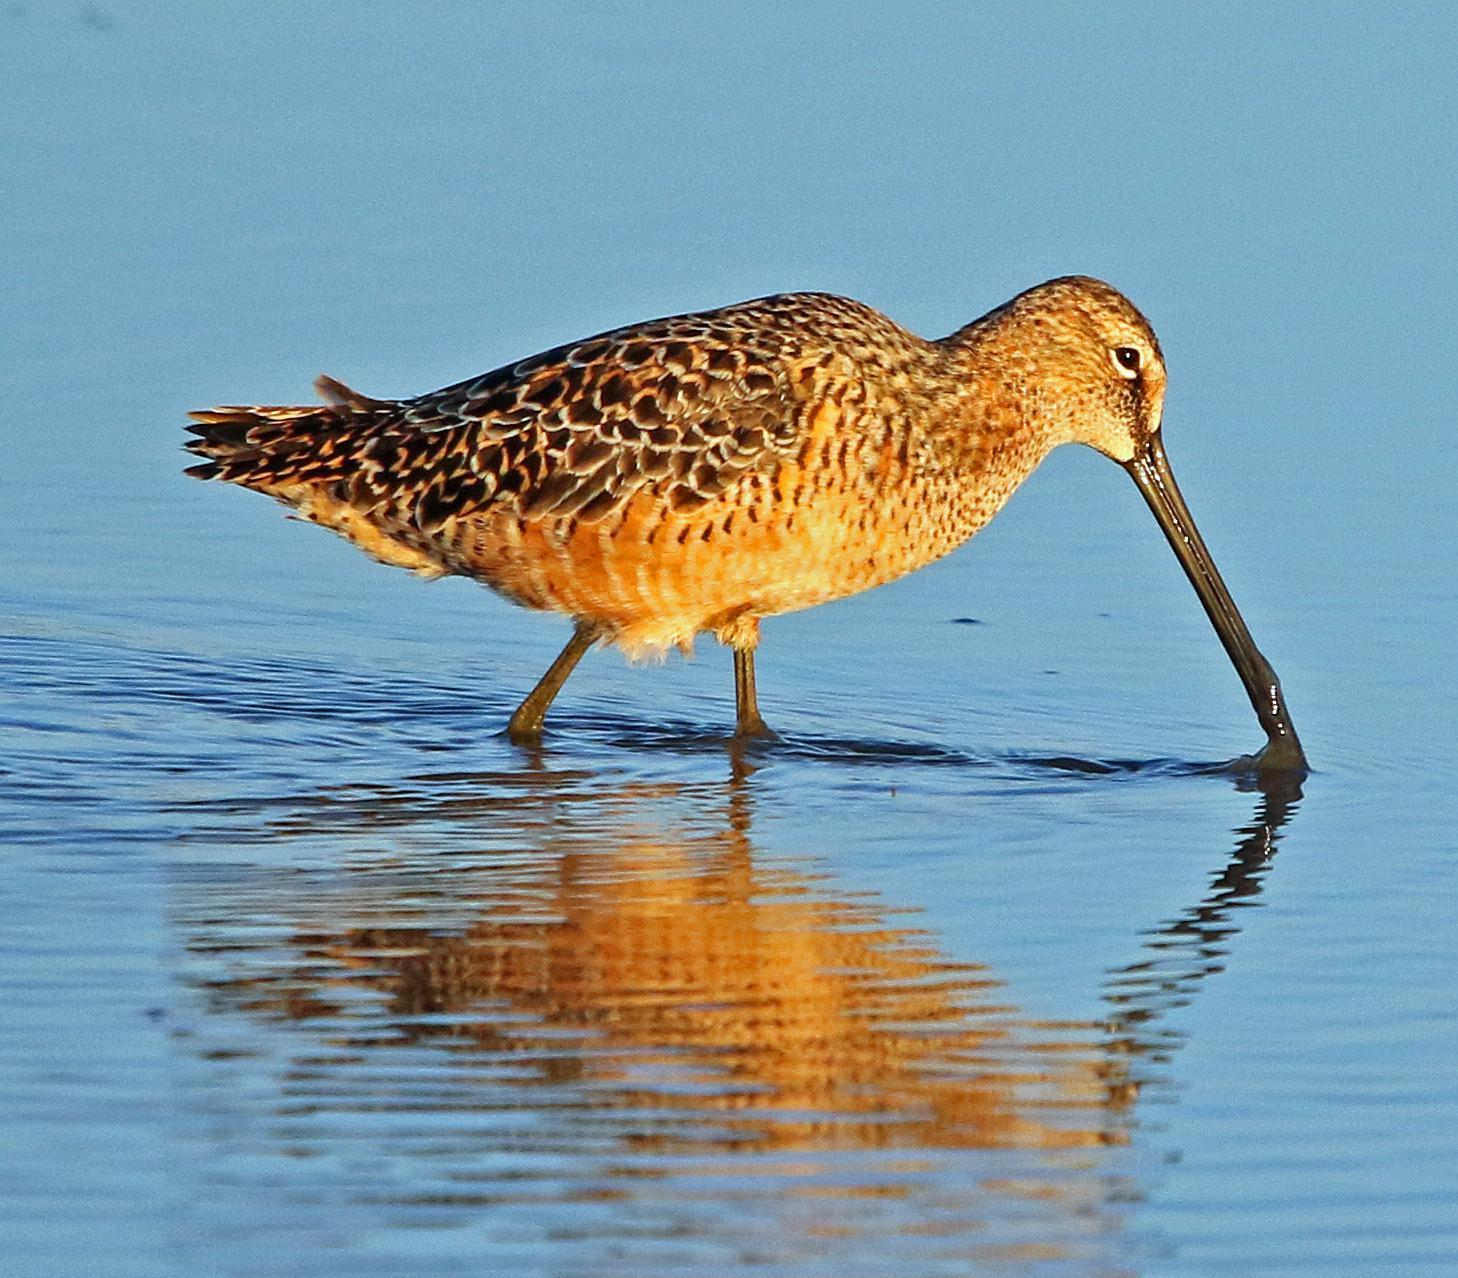 Long-billed Dowitcher Photo by Tom Gannon